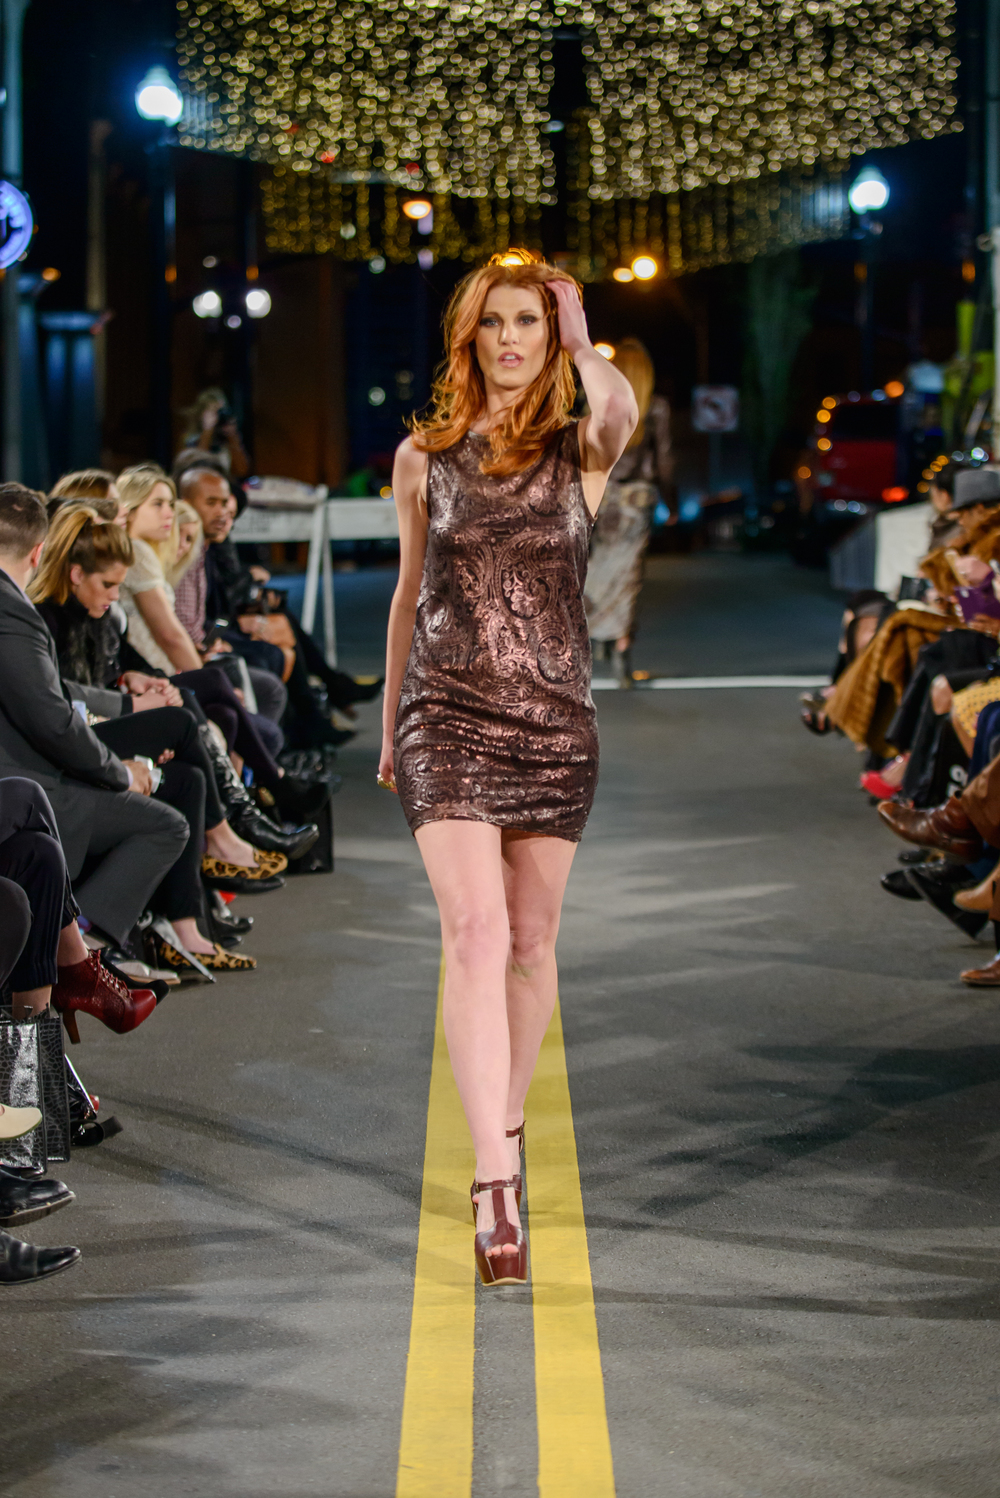 Image courtesy of  Verve Studios  Tony Hayes and  Nashville Fashion Week